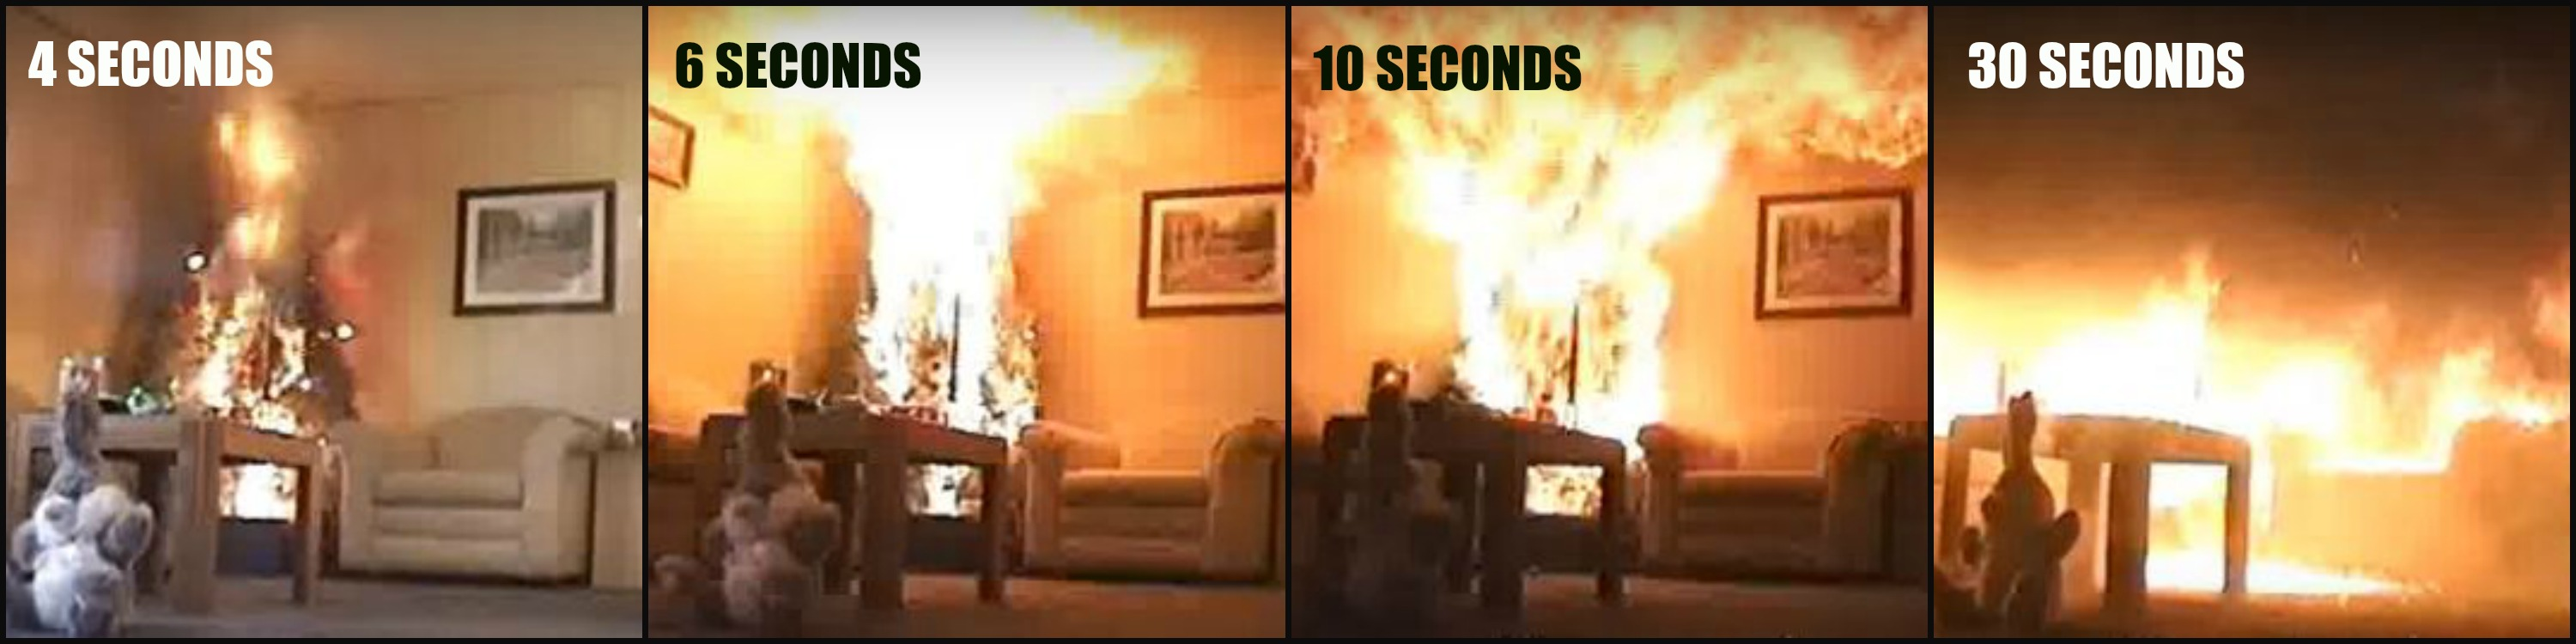 Christmas Tree Burning.jpg